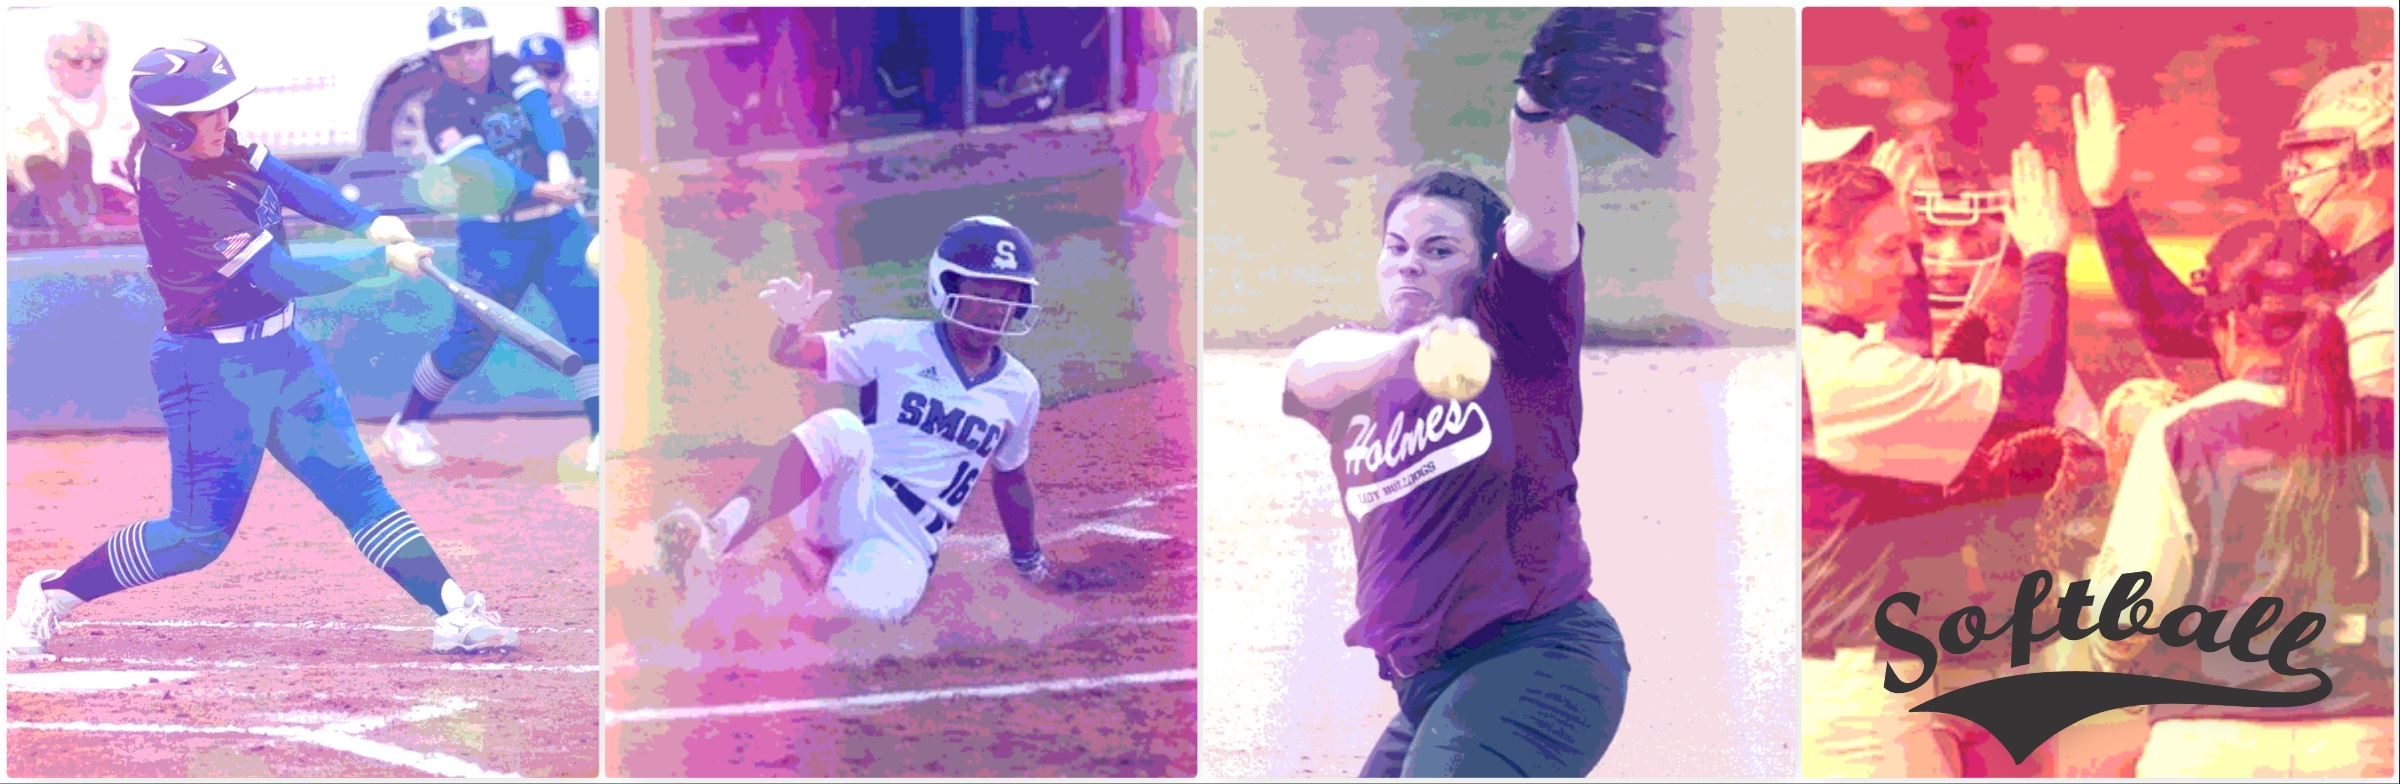 MACJC Softball Standings and Archives